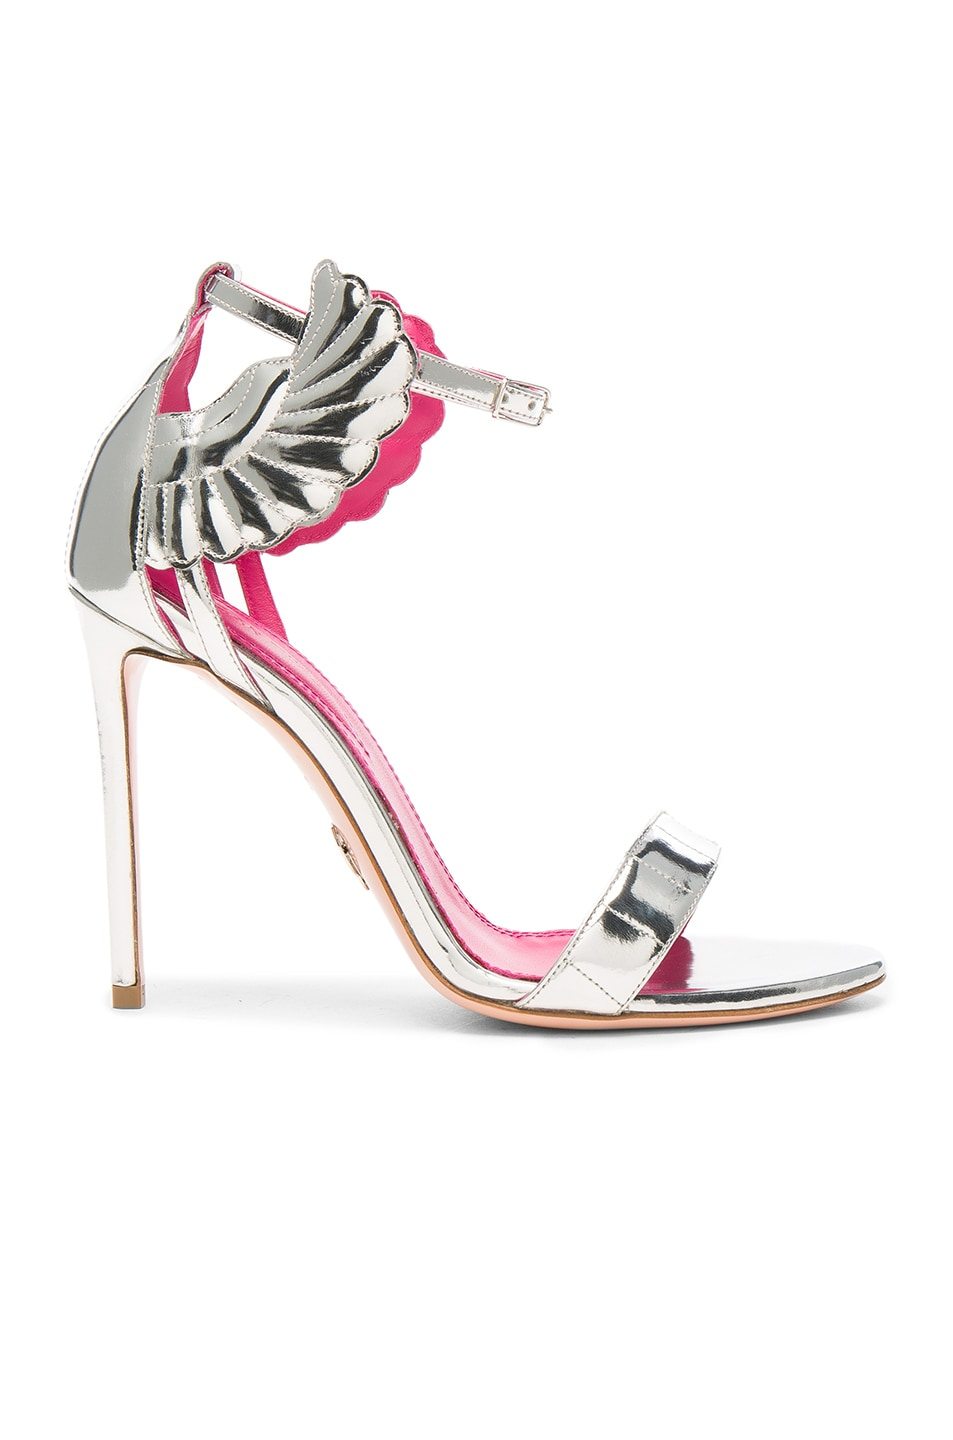 Image 1 of Oscar Tiye Leather Malikah Sandals in Silver Mirror